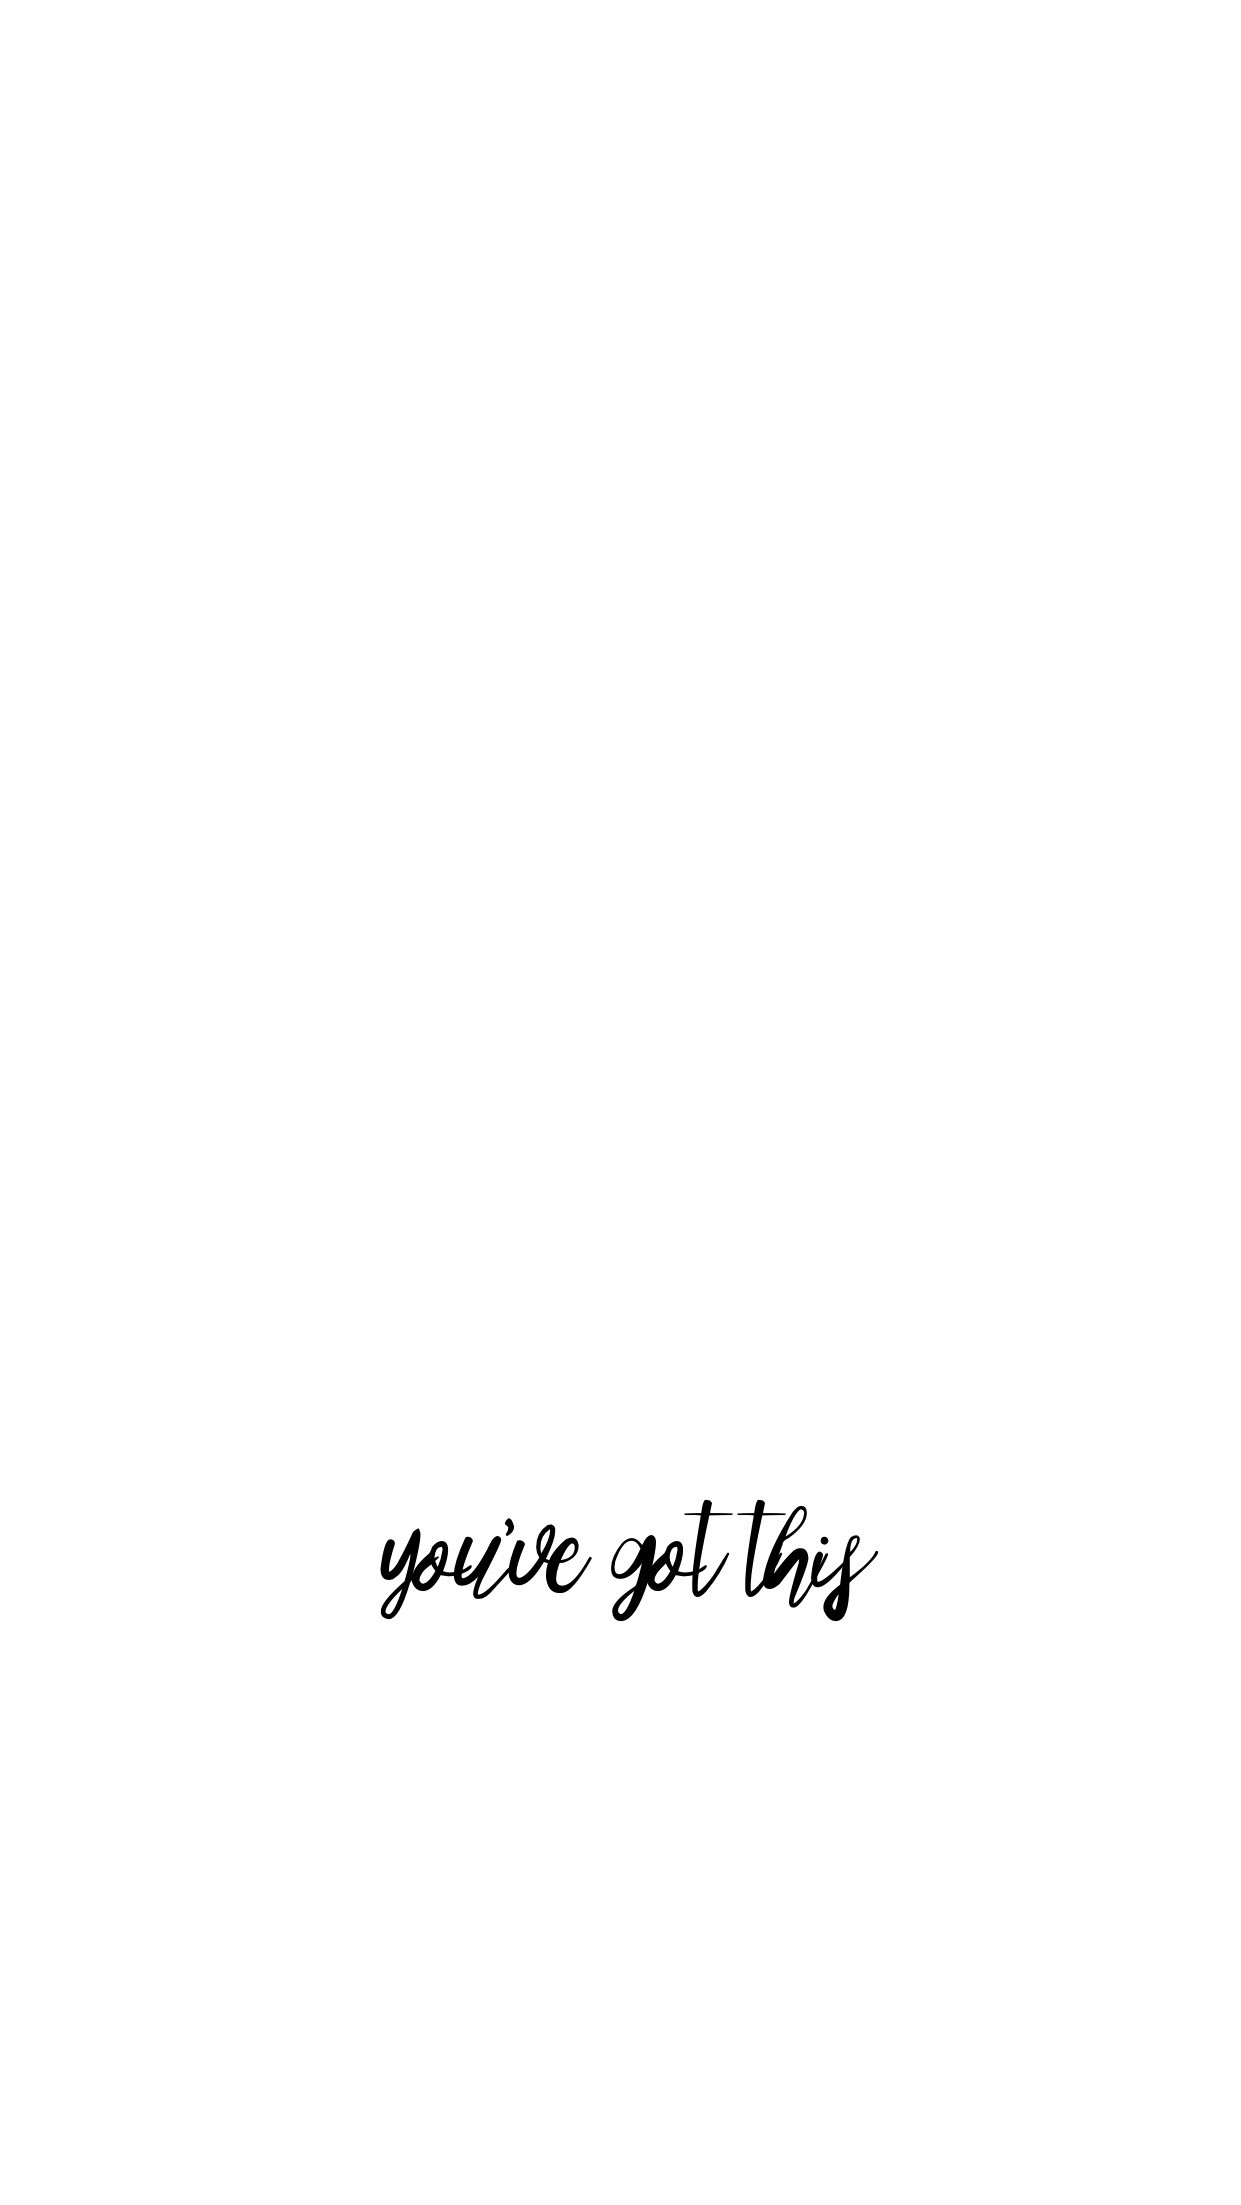 black, white, minimal, simple, wallpaper, background, iPhone, quote,